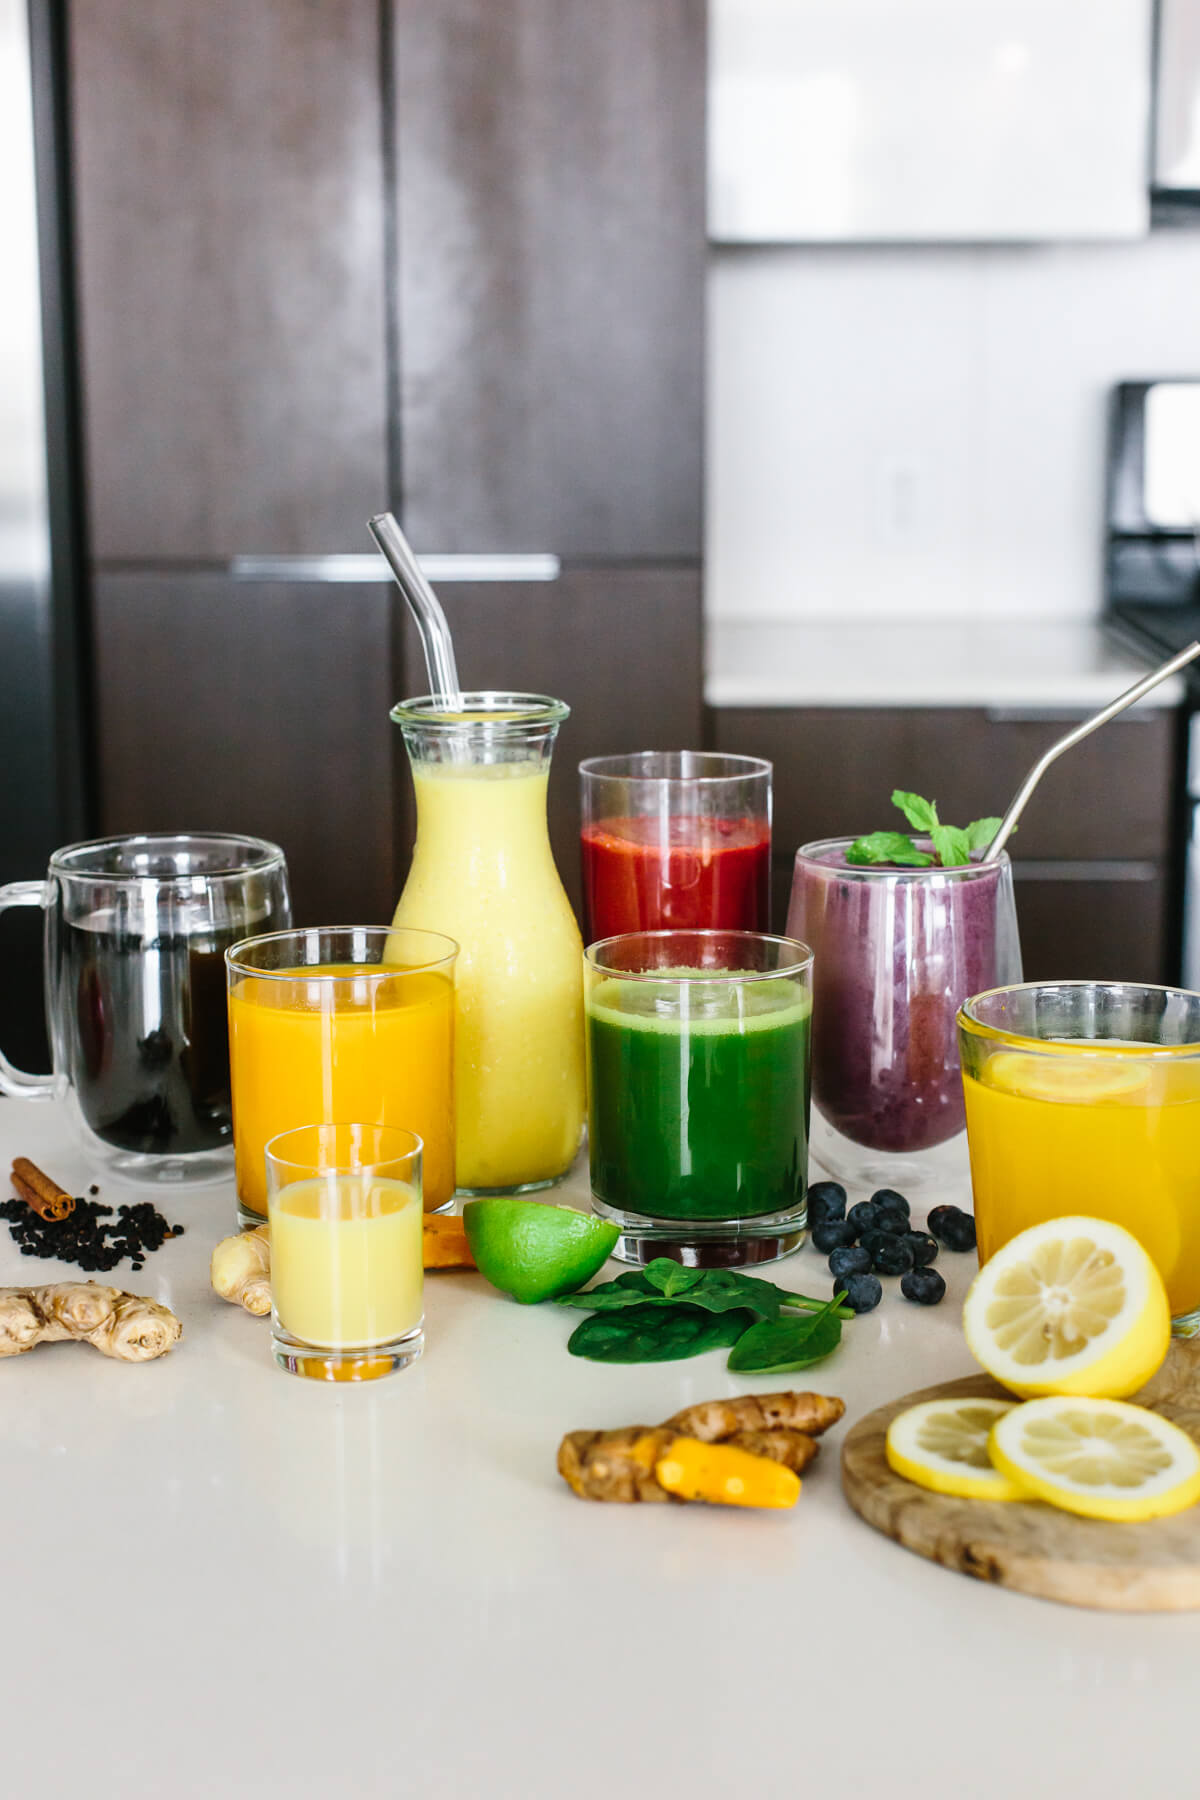 Anti-inflammatory drinks laid out on a countertop.